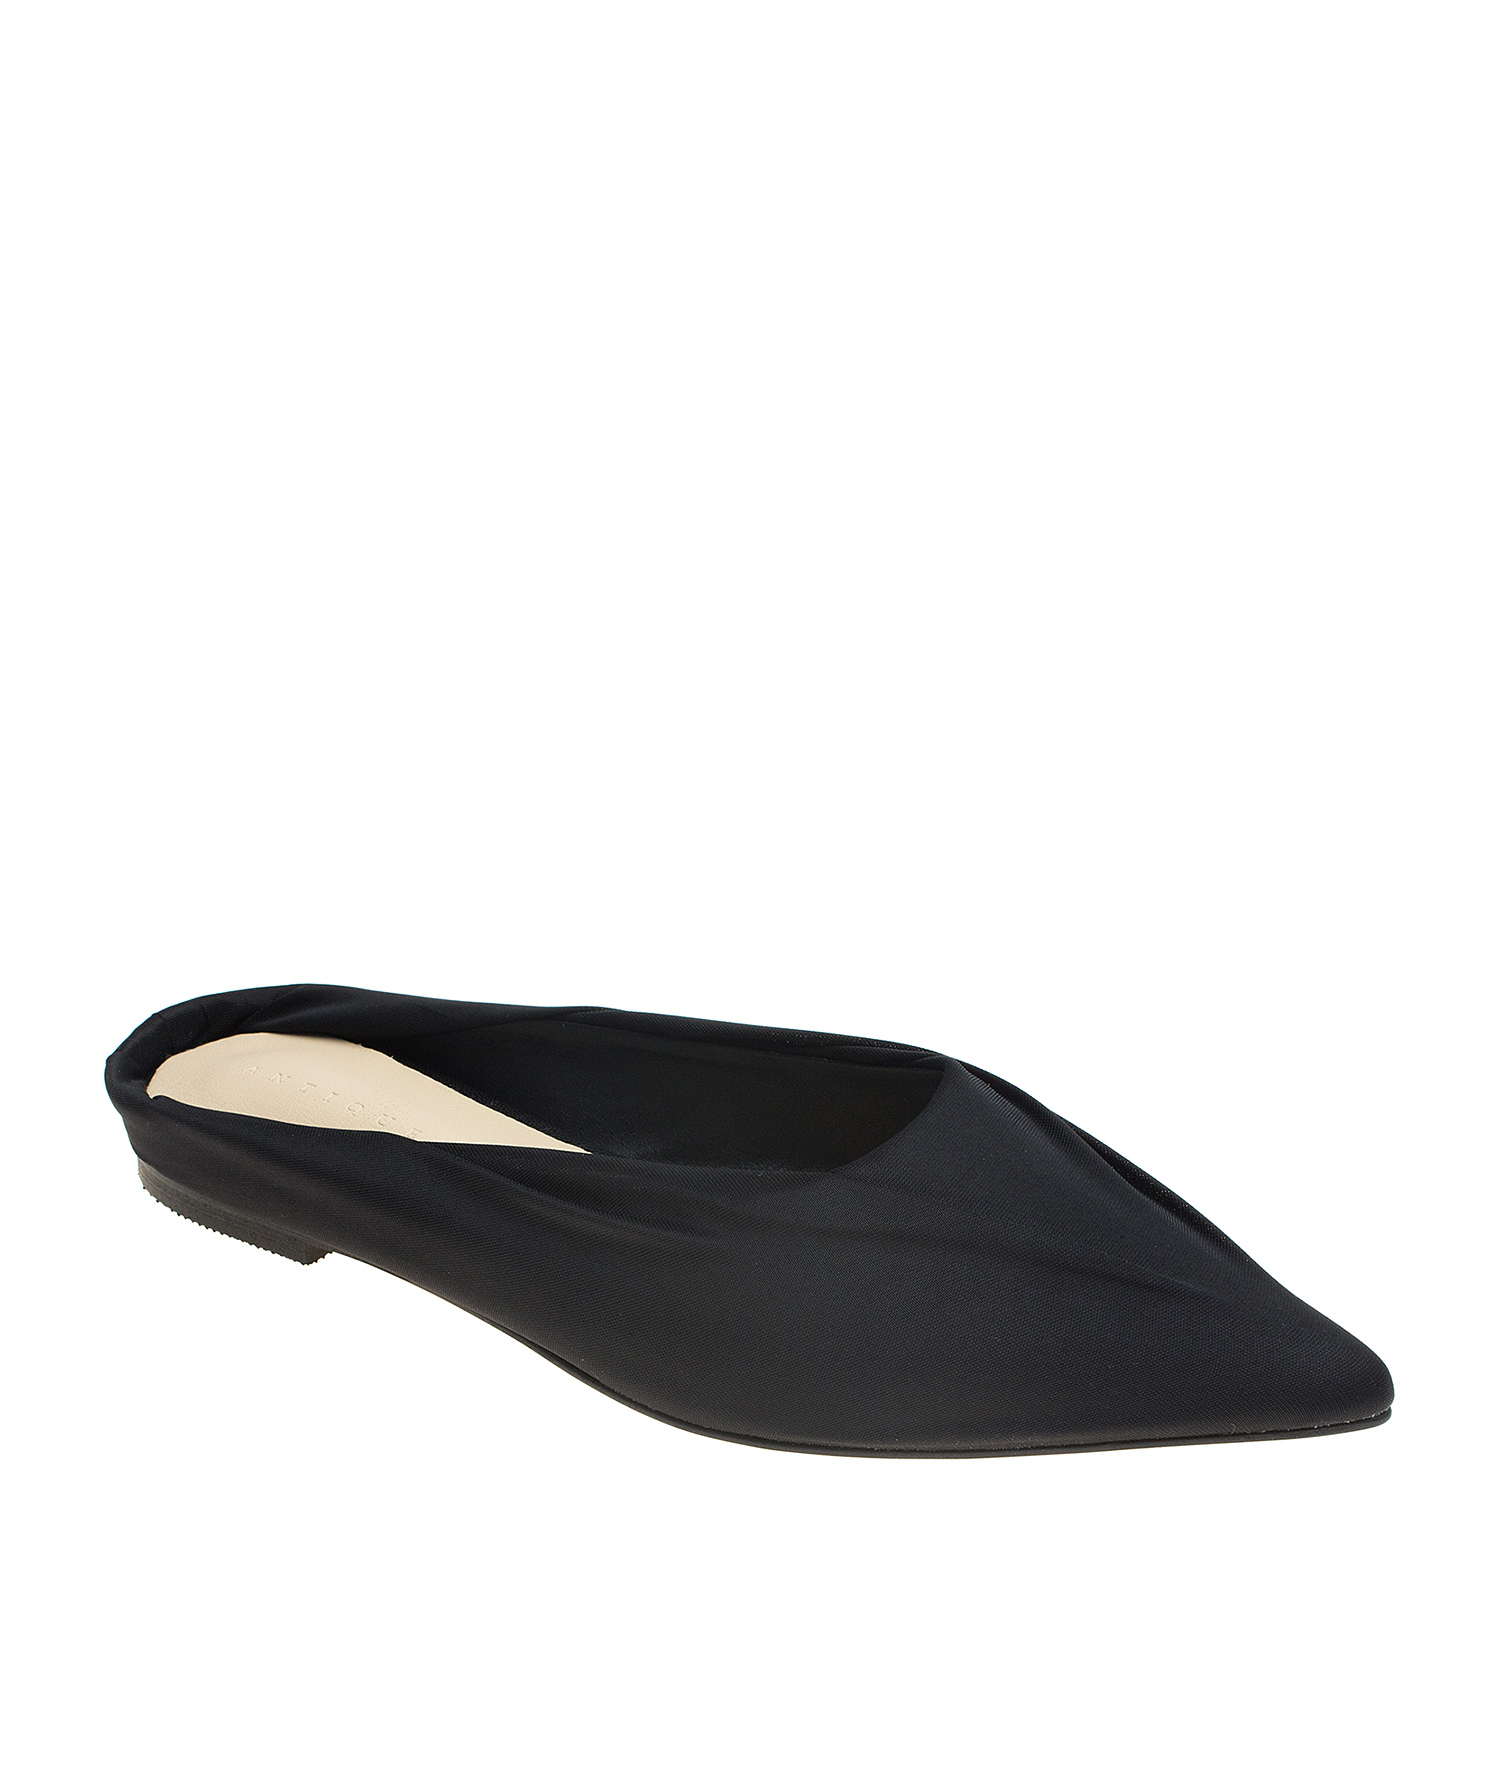 0242664fde12 Pointy Toe Soft Fabric Covered Dress Mules - annakastleshoes.com